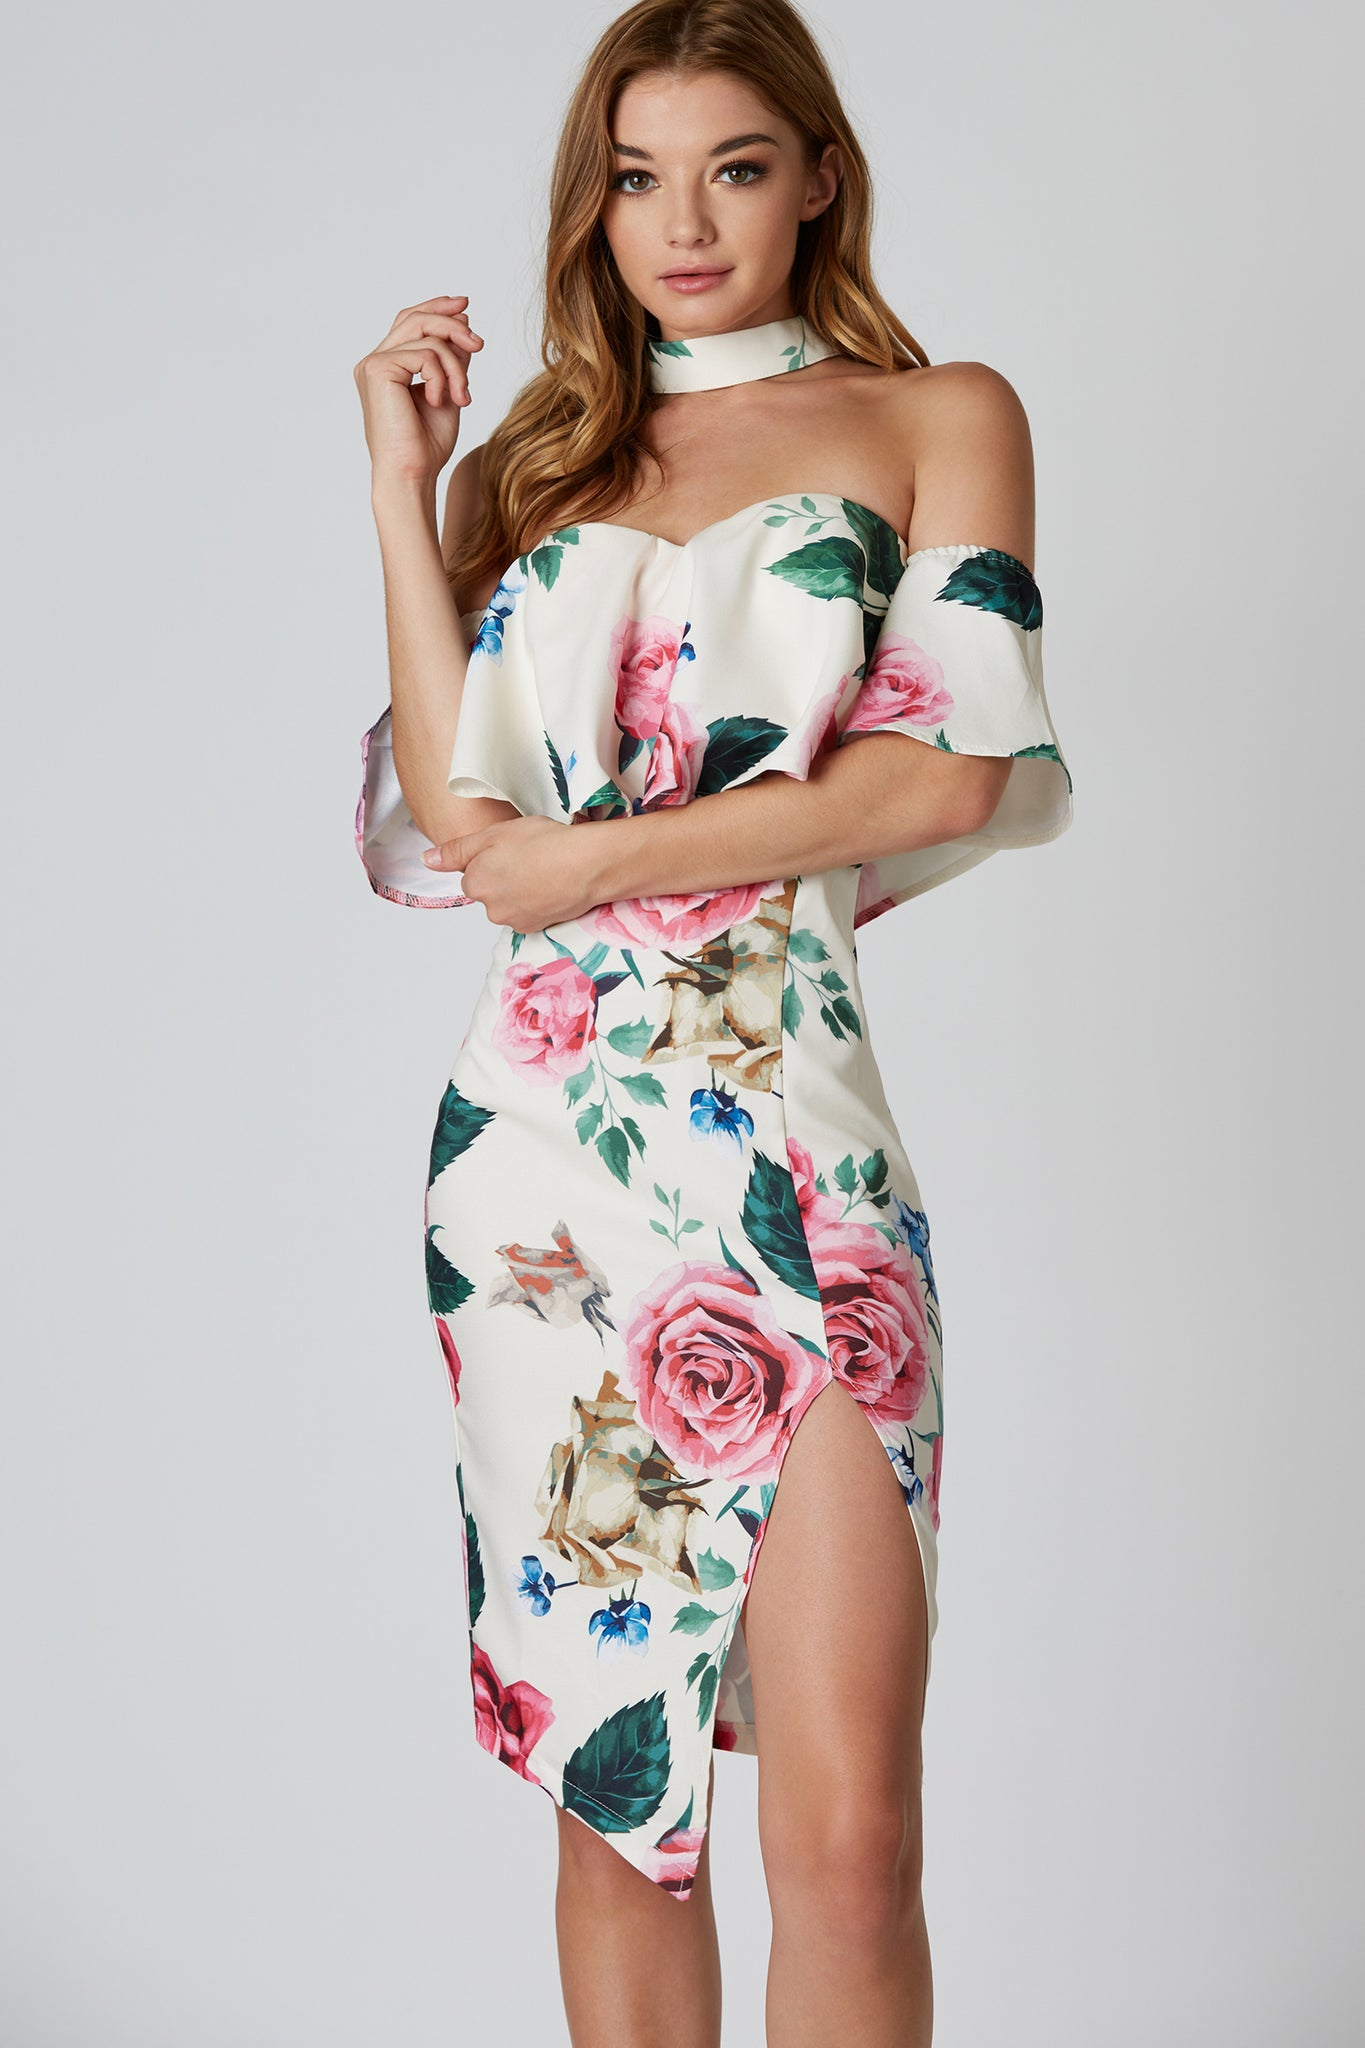 Colorful printed midi dress with floral patterns throughout and flattering choker neckline. Asymmetrical hem with slit in front and back zip closure.